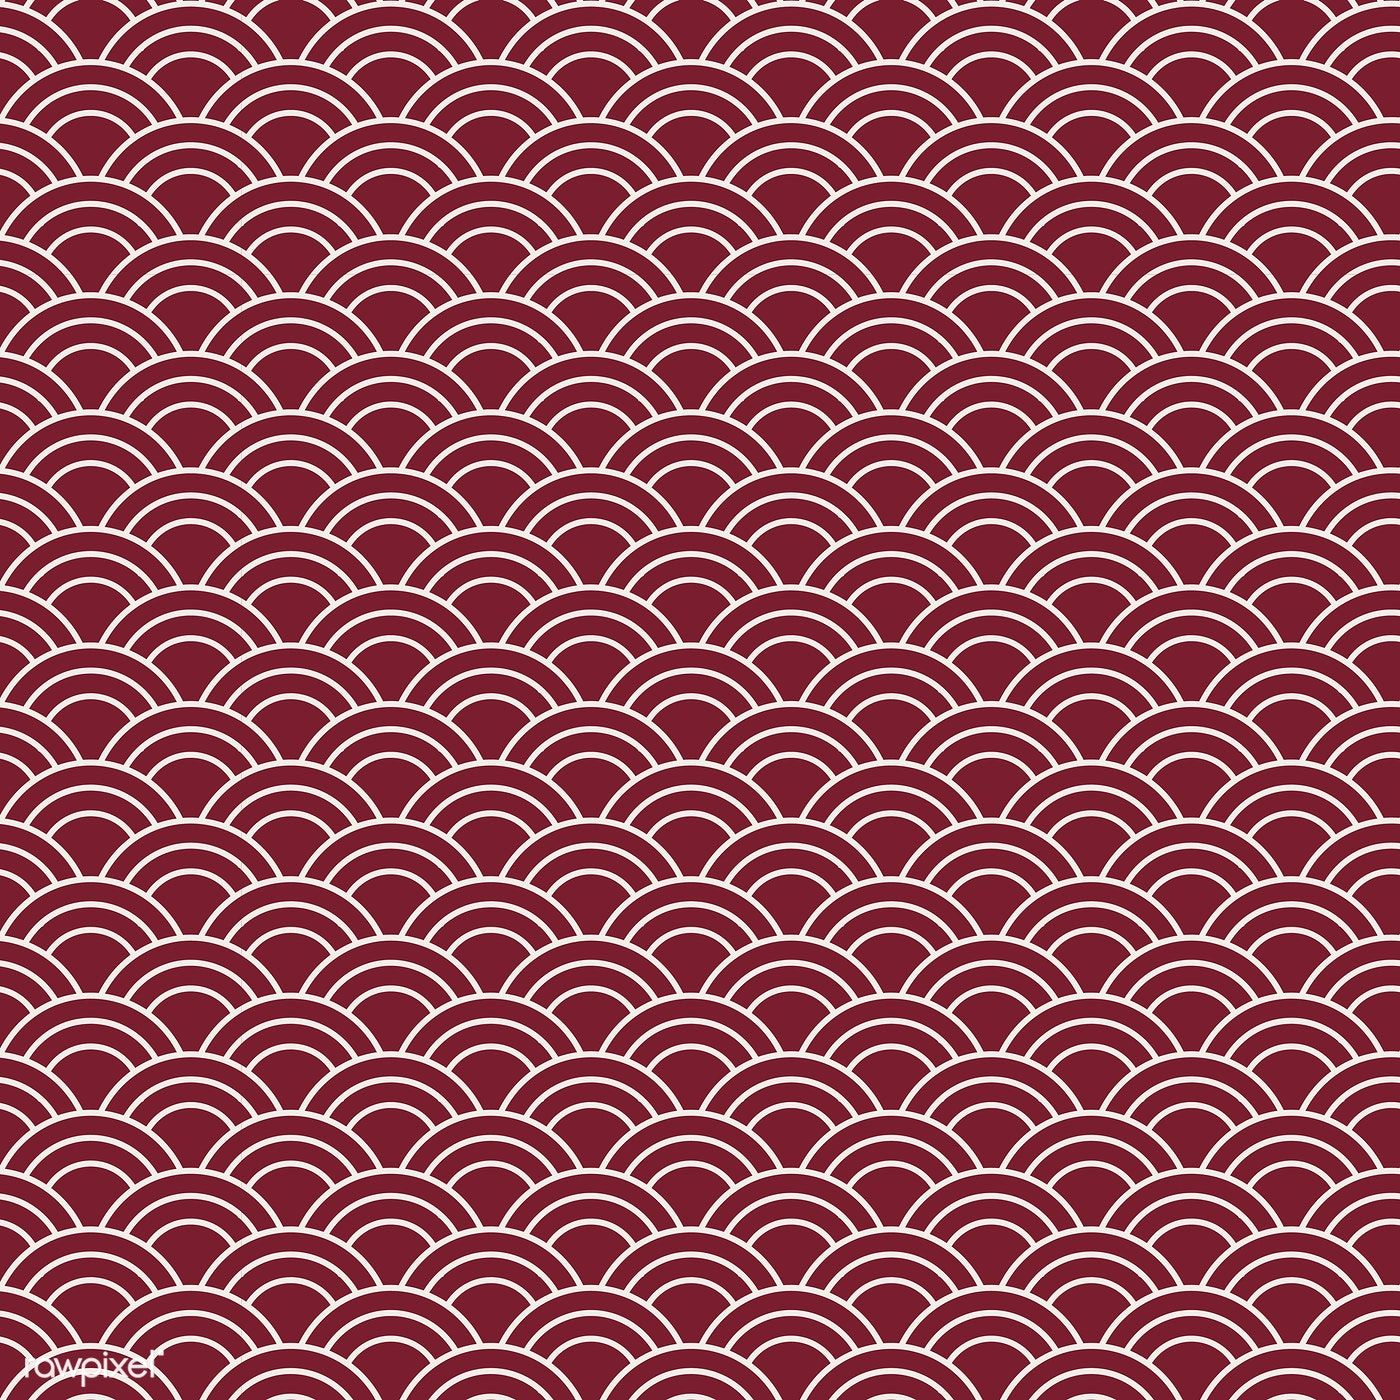 Download Premium Vector Of Seamless Japanese Pattern With Wave